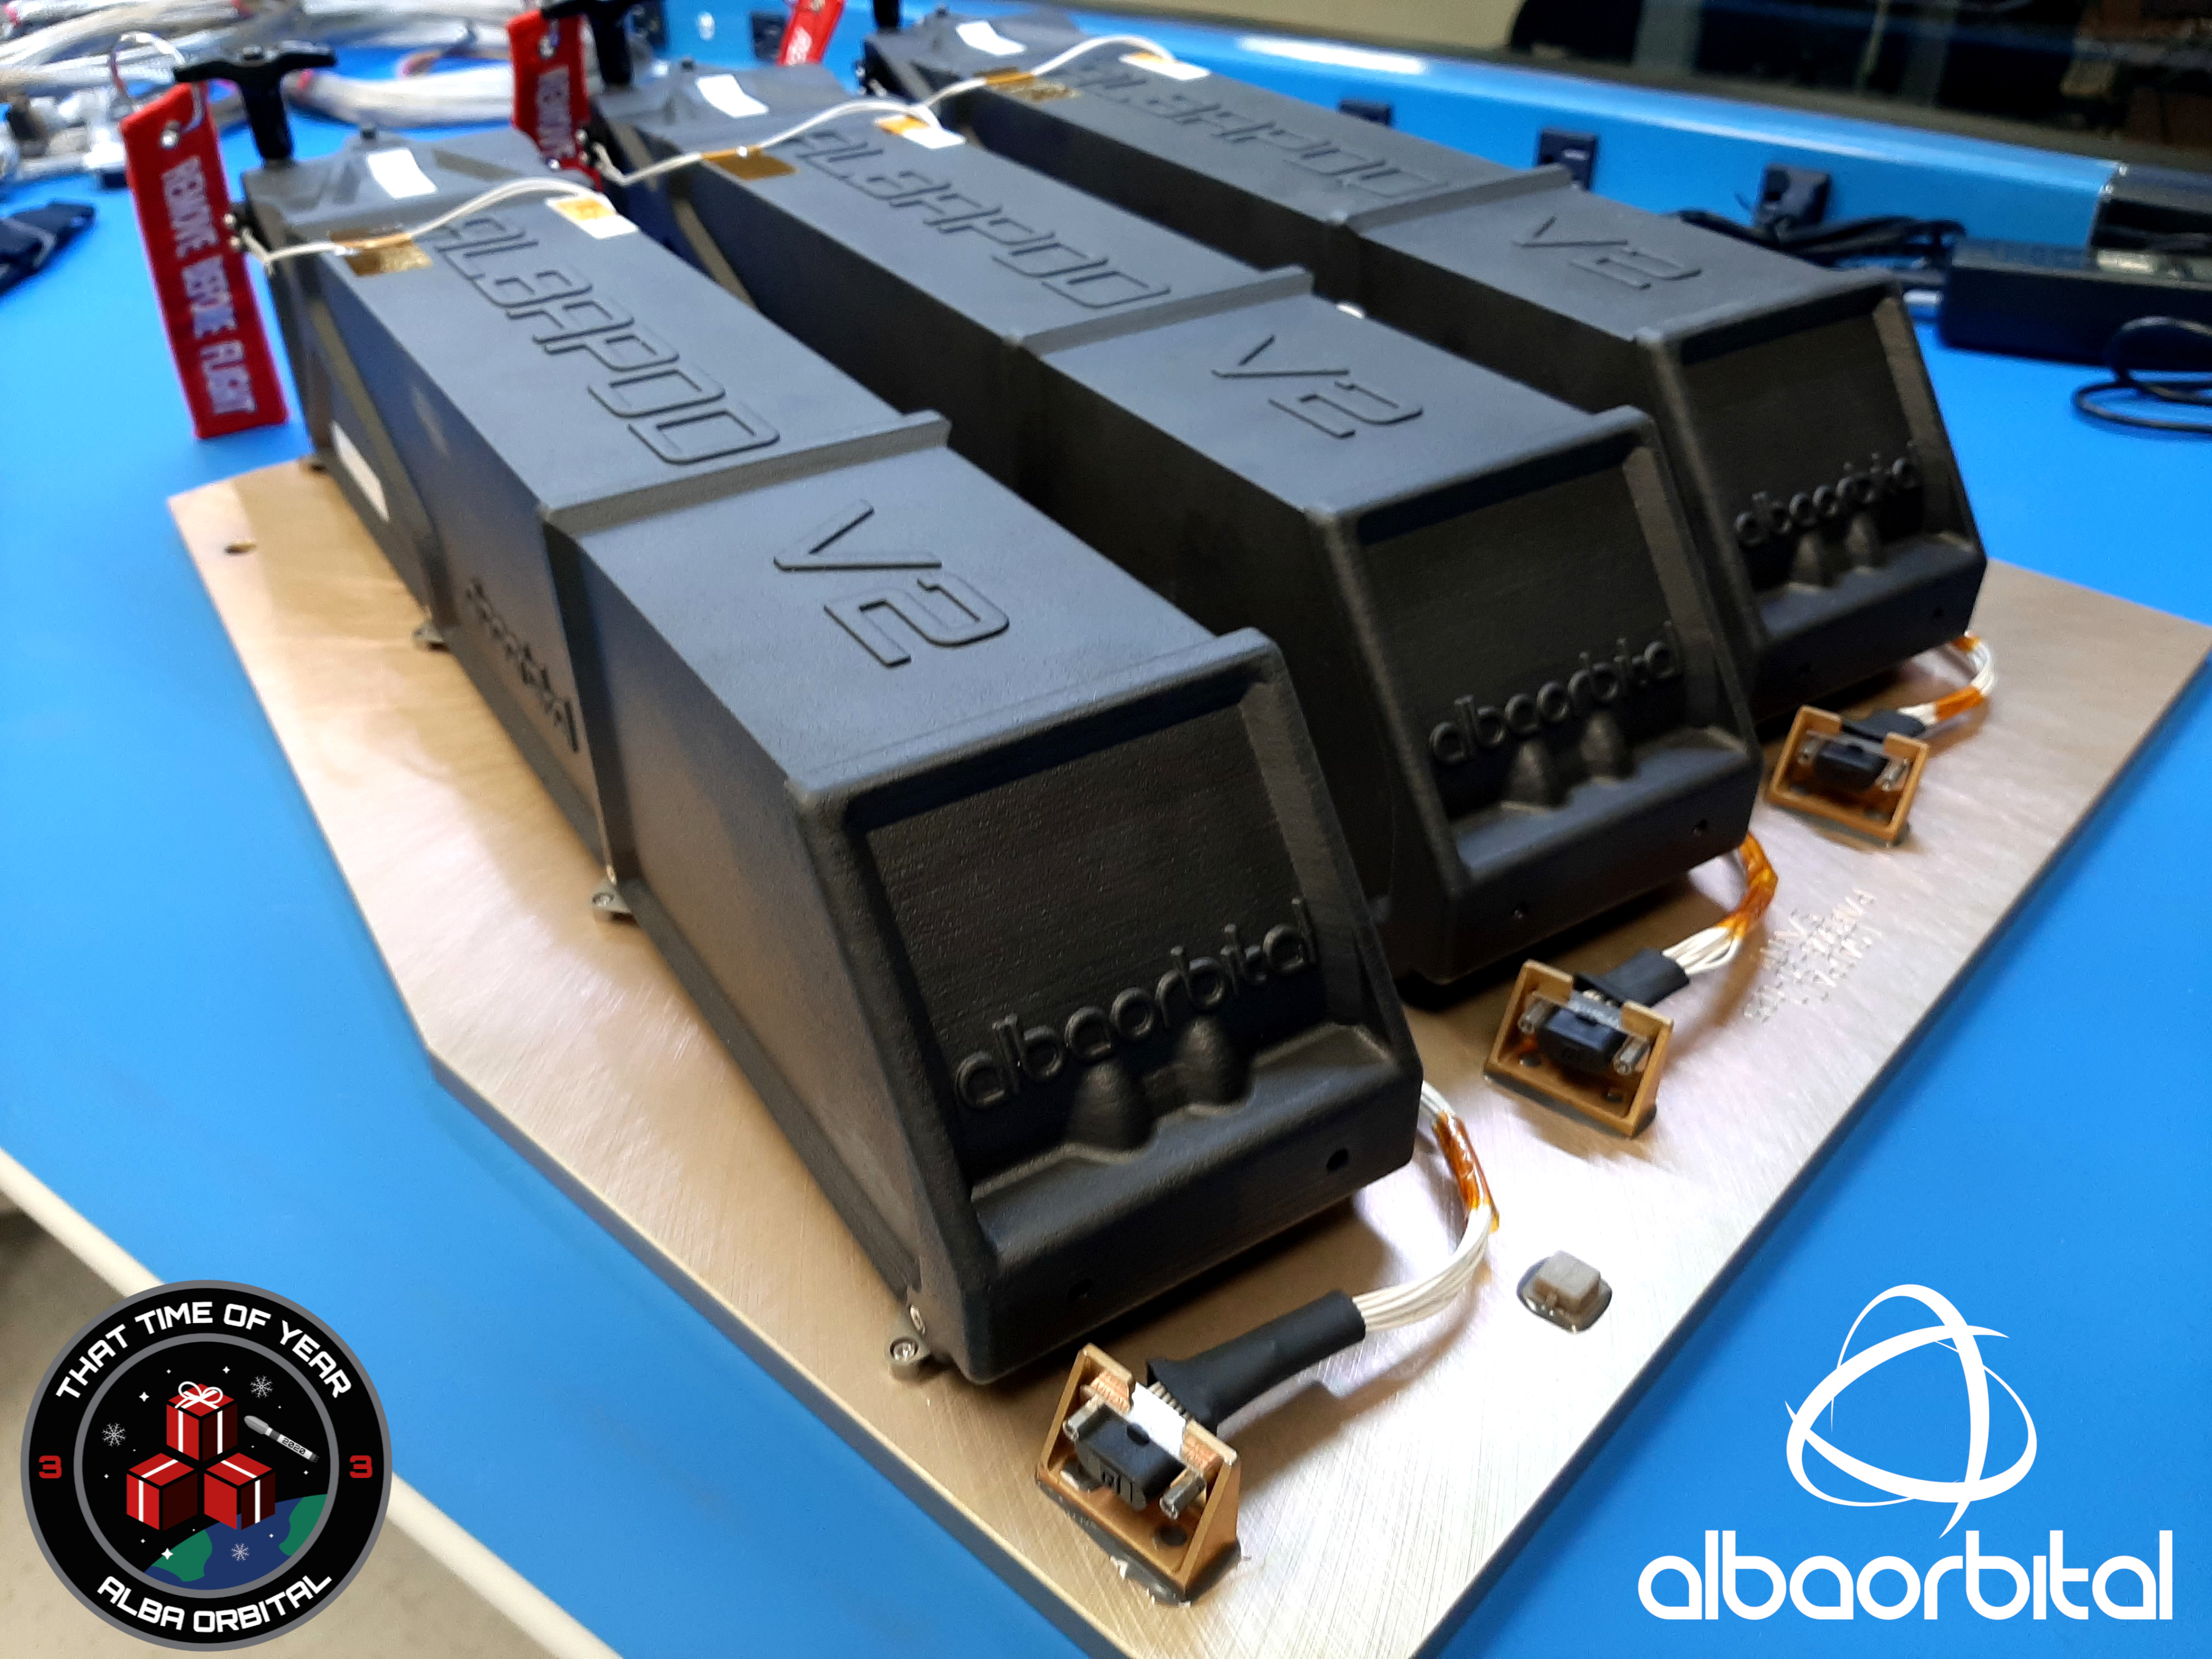 Alba Orbital will take its customers PocketQubes to orbit on the SpaceX Falcon 9 launch vehicle. Image via CRP Technology.